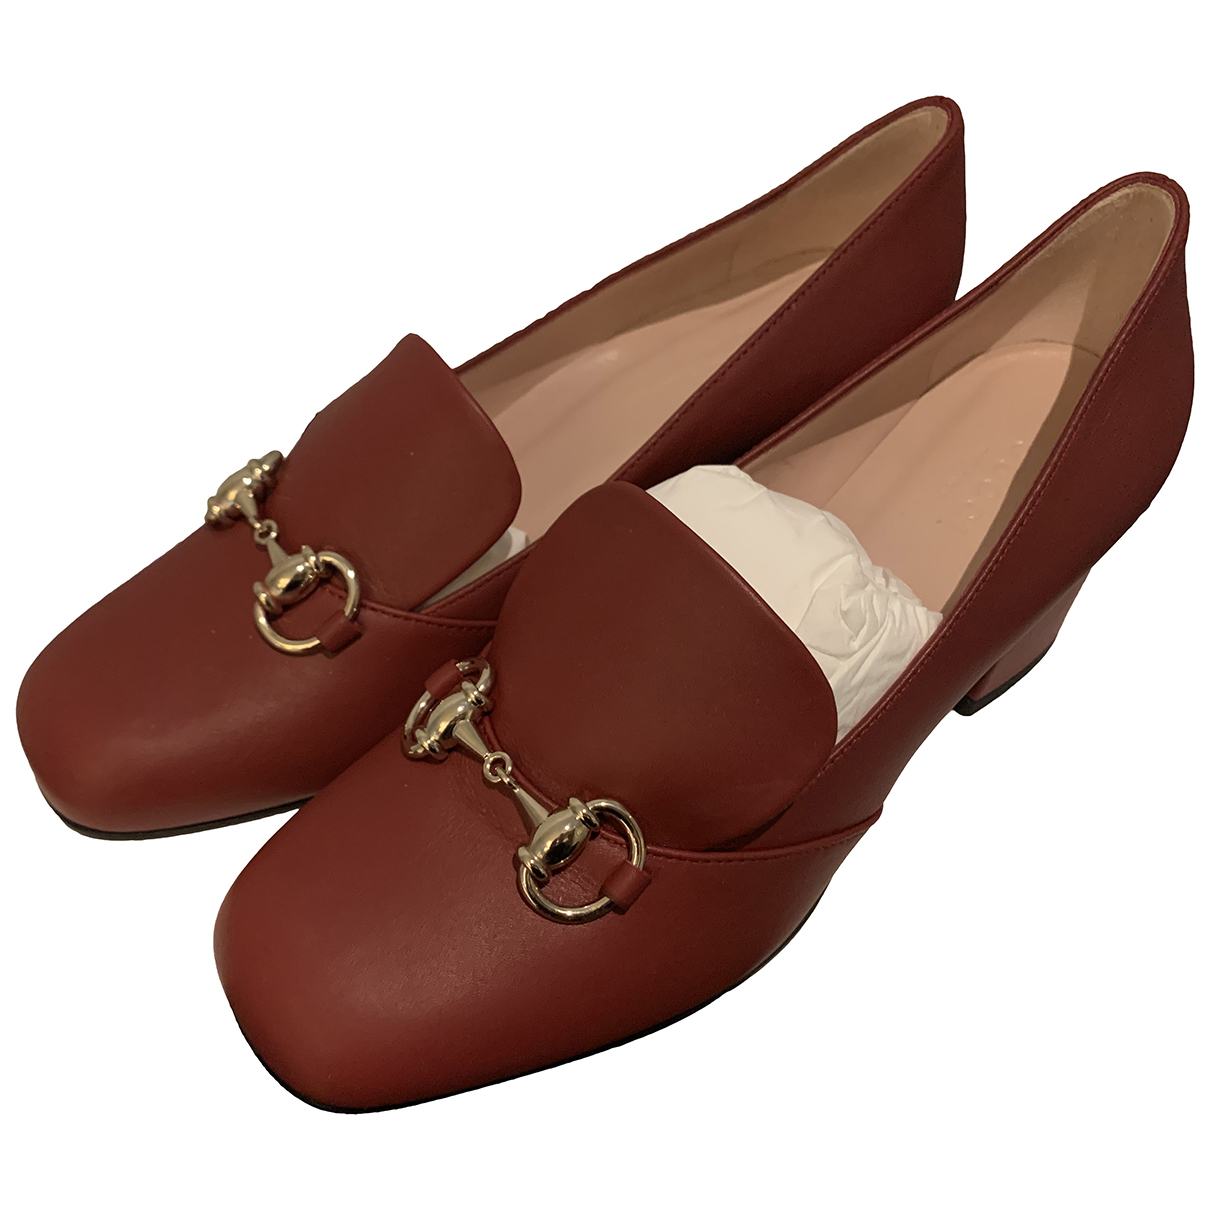 Gucci N Burgundy Leather Mules & Clogs for Women 36.5 EU